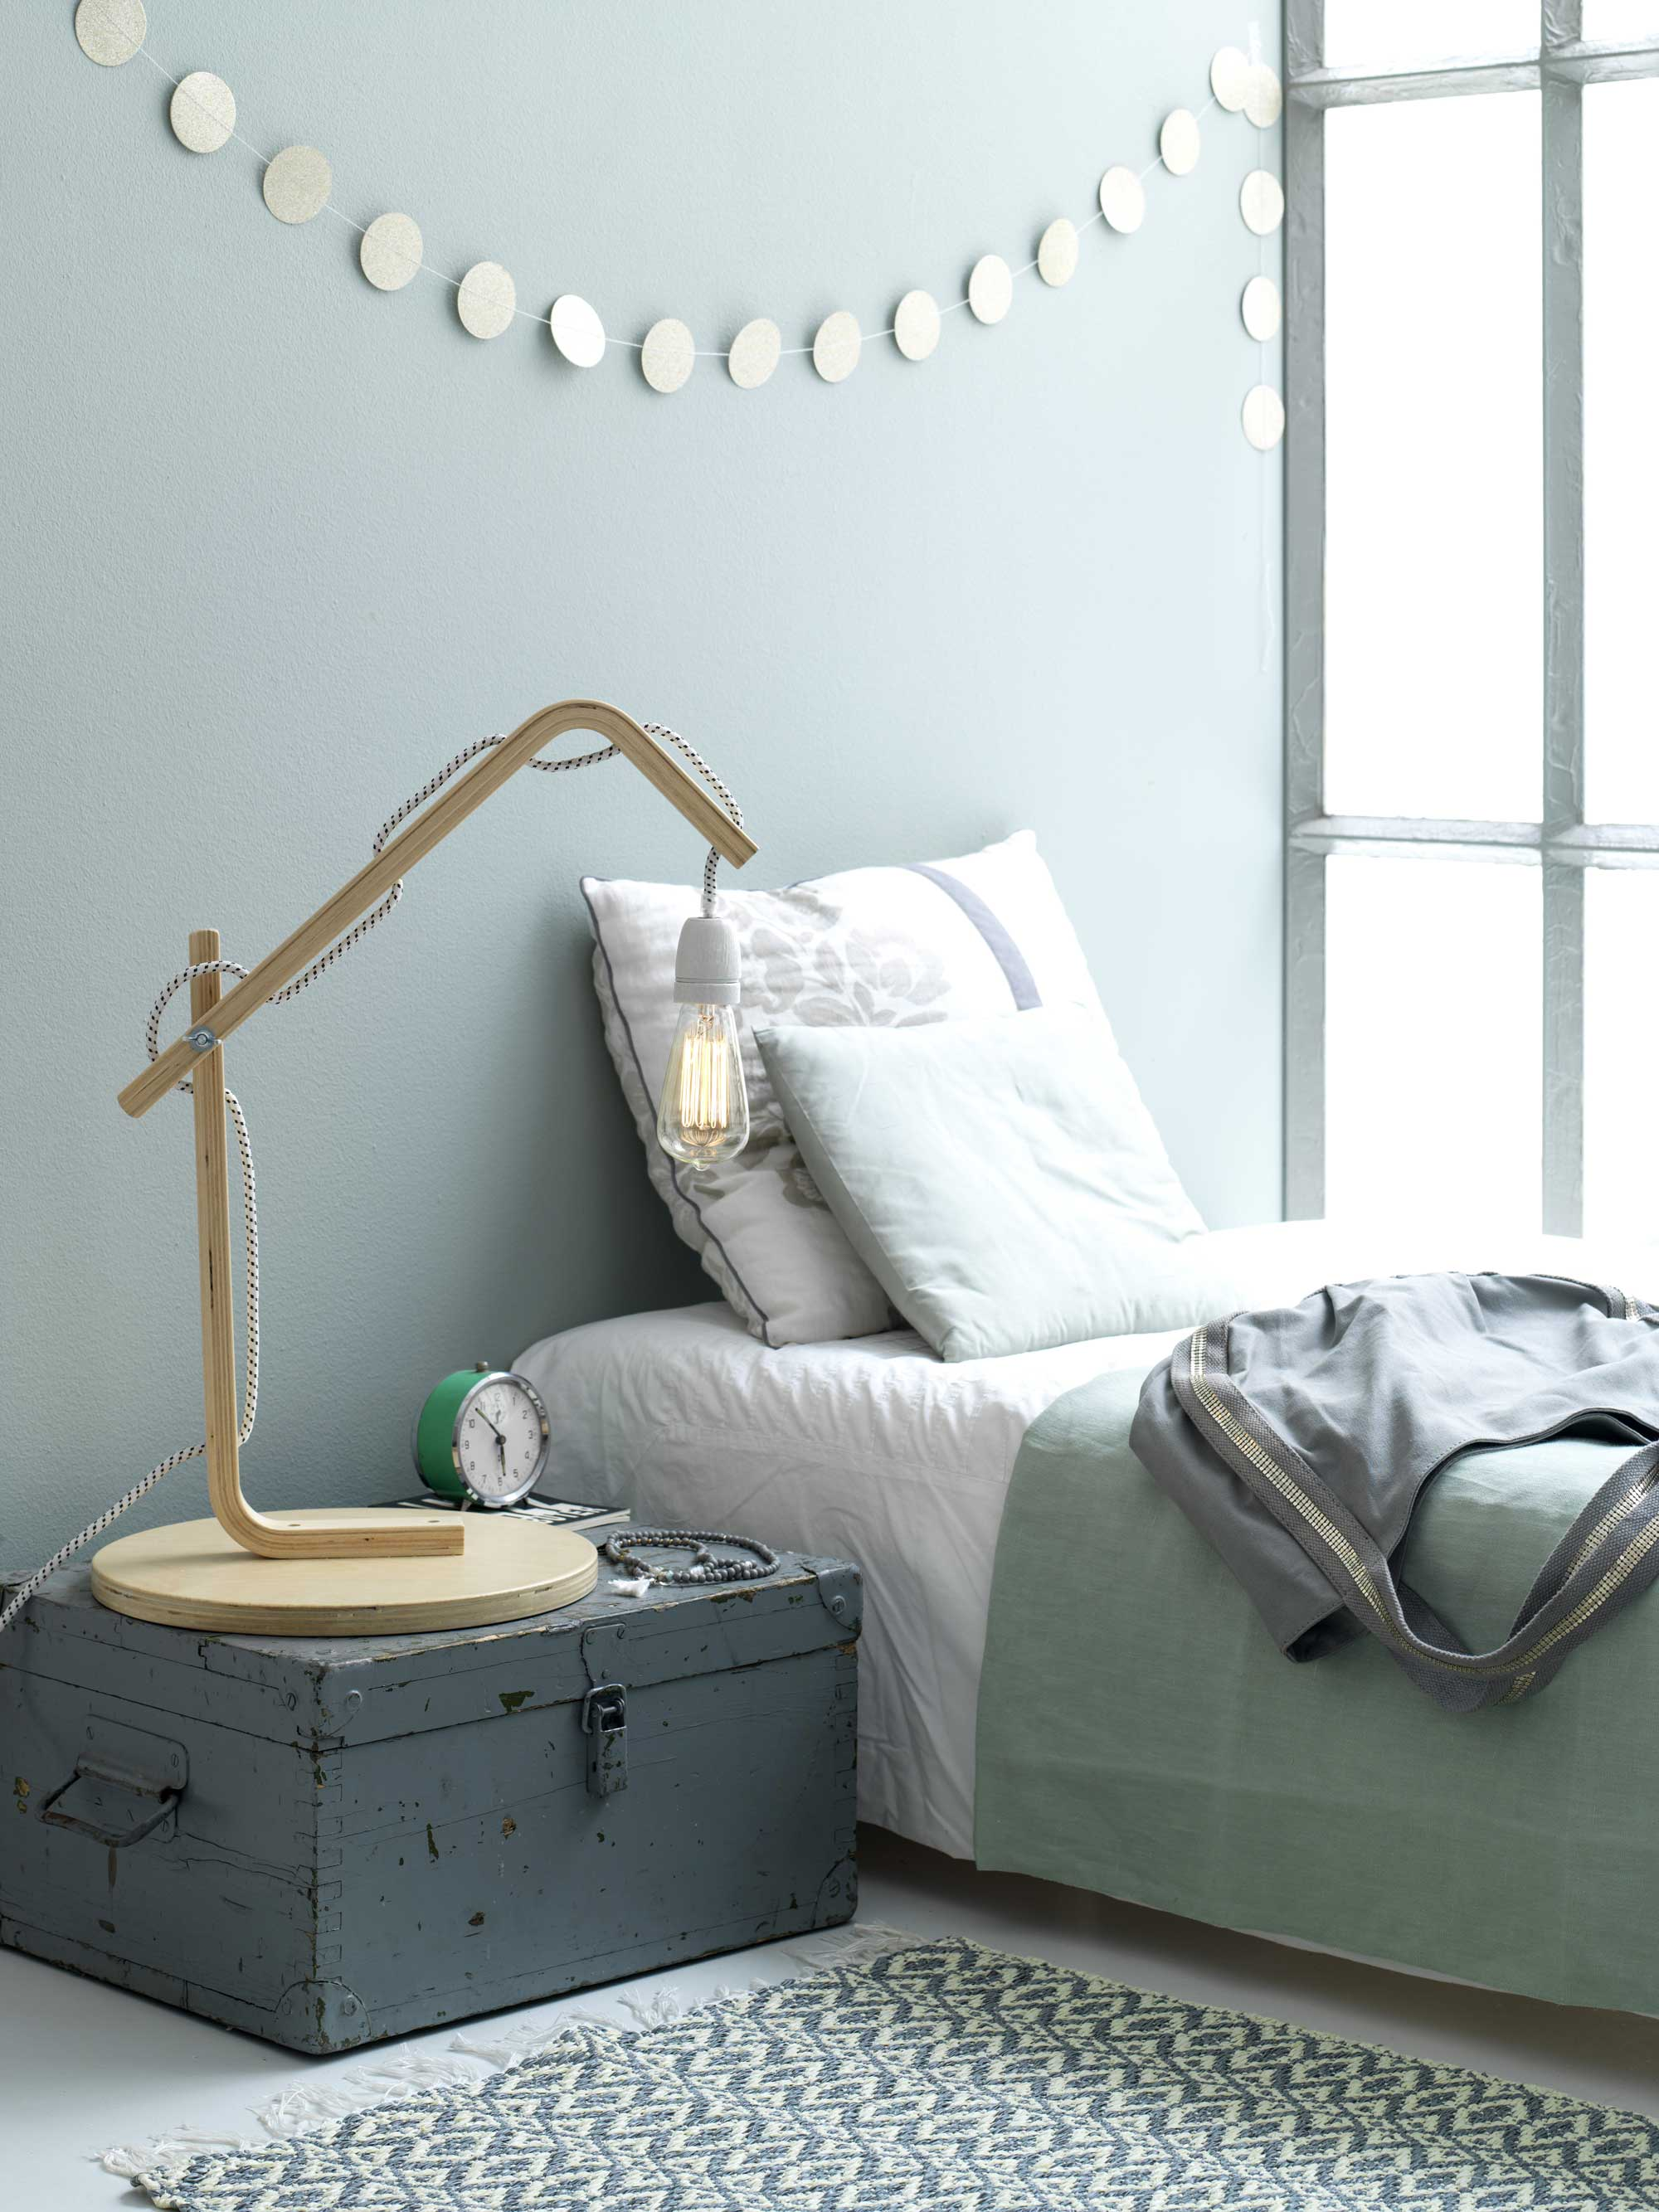 bedlamp-hout-diy